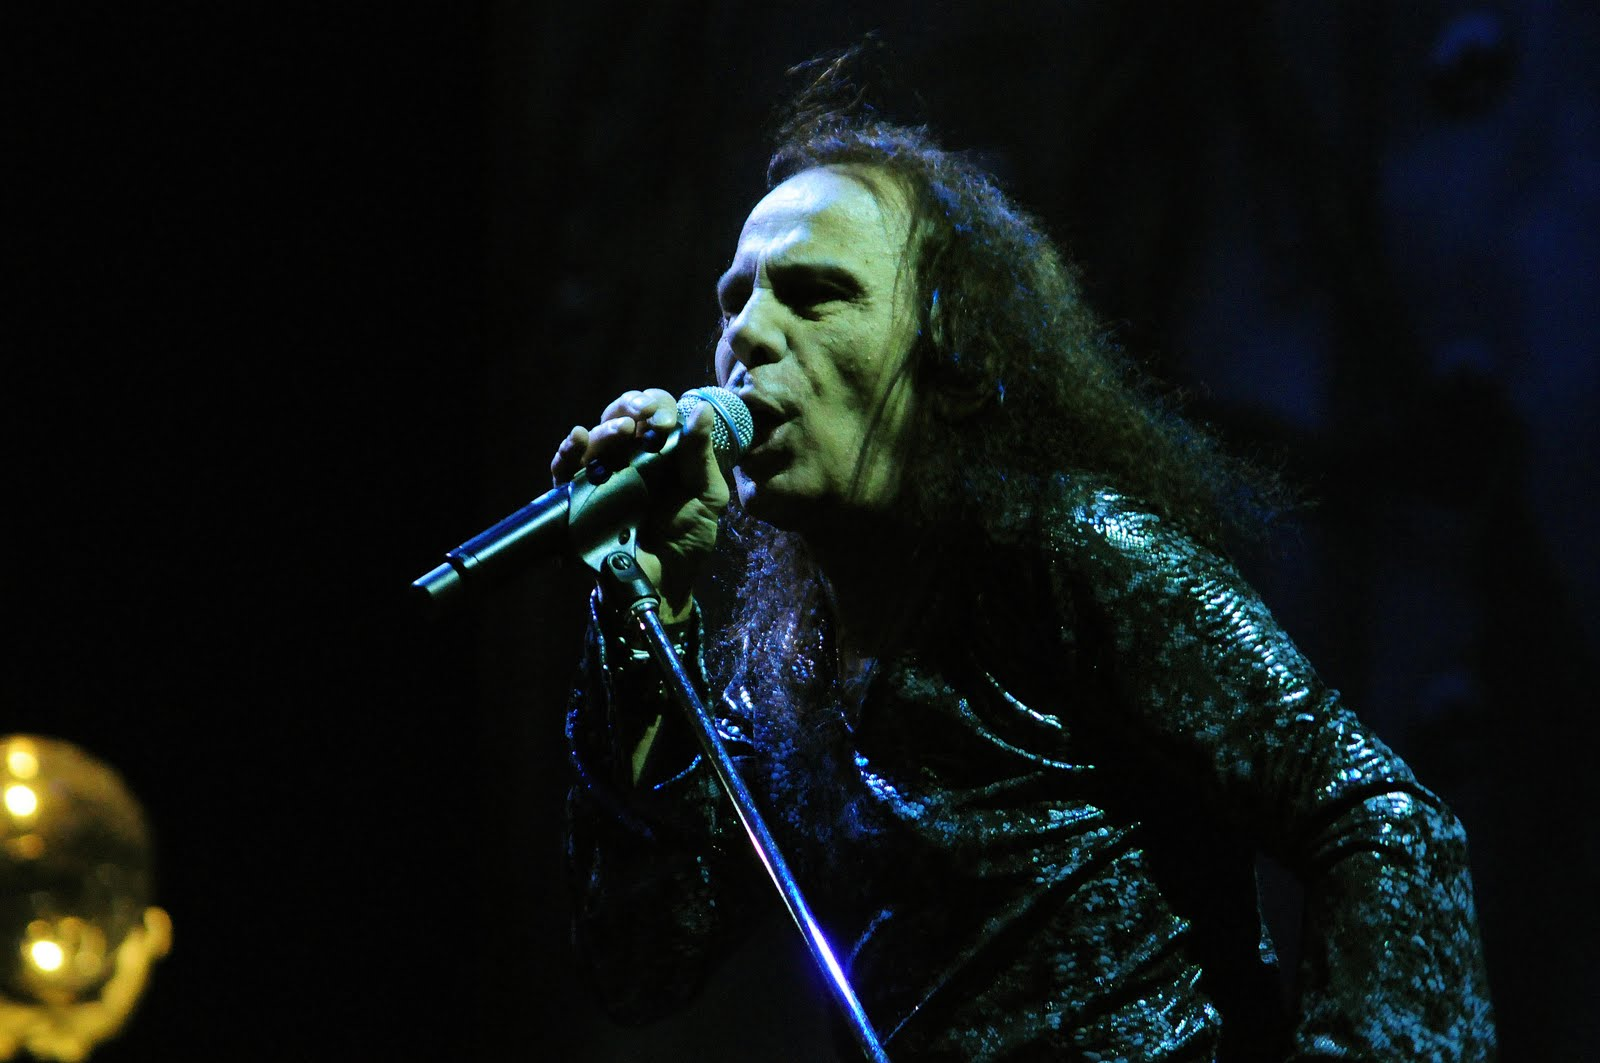 Full Hd Wallpapers Sunsets Twisted S Wallpapers Ronnie James Dio 5